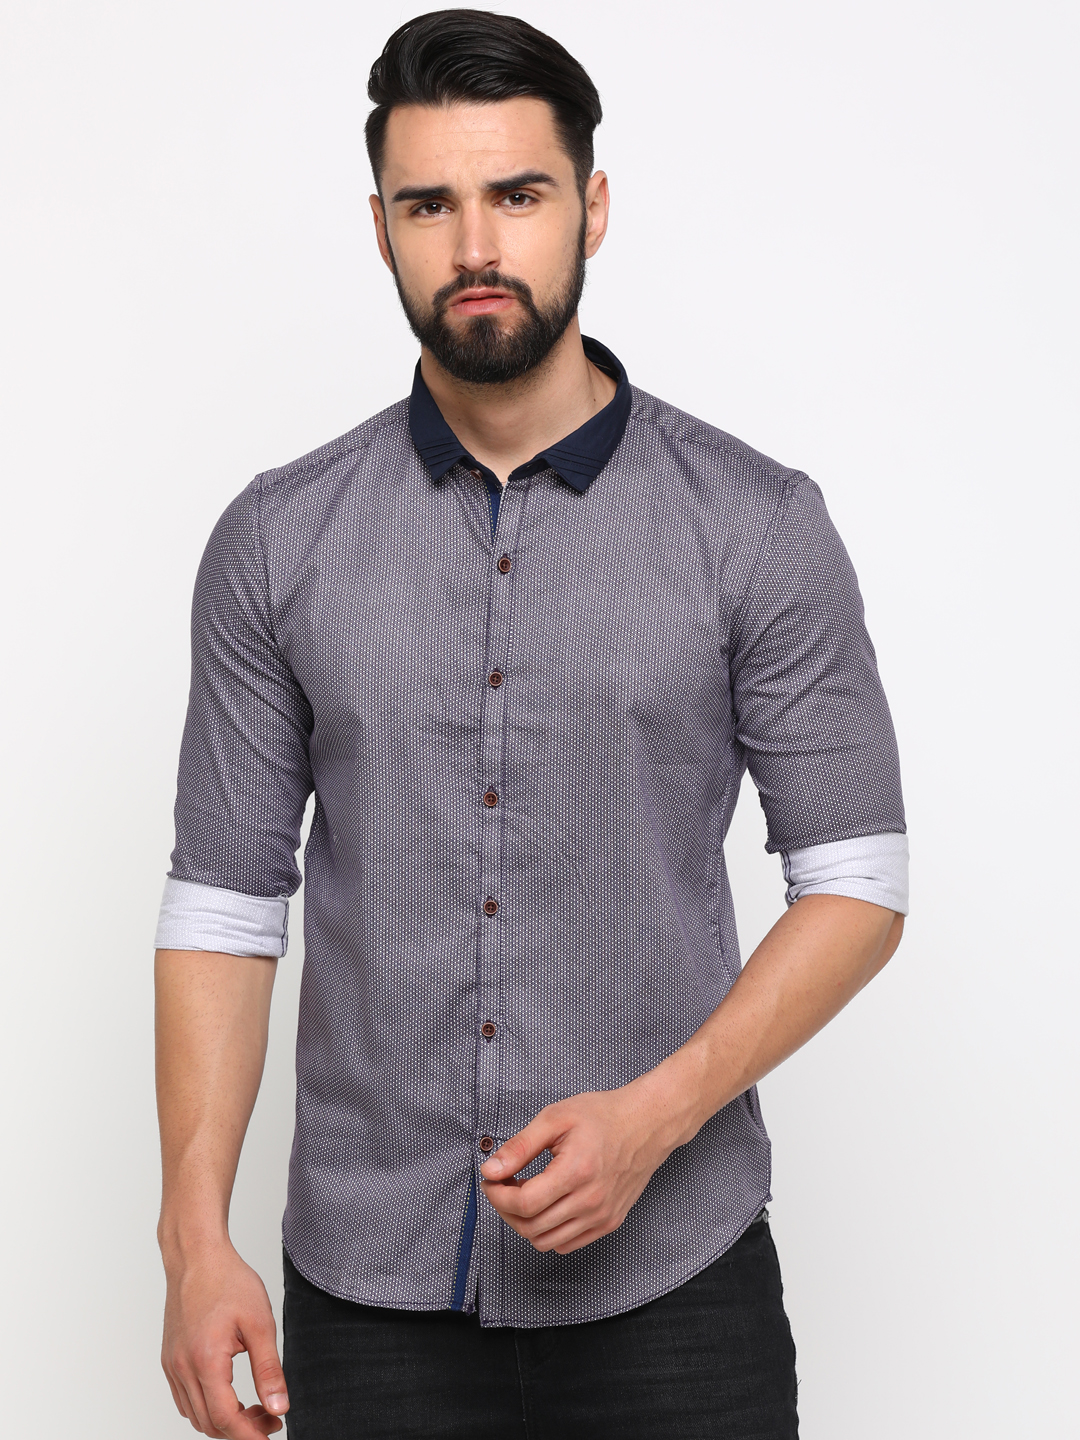 With | With Men's Purple Cotton Printed SlimFit Shirt